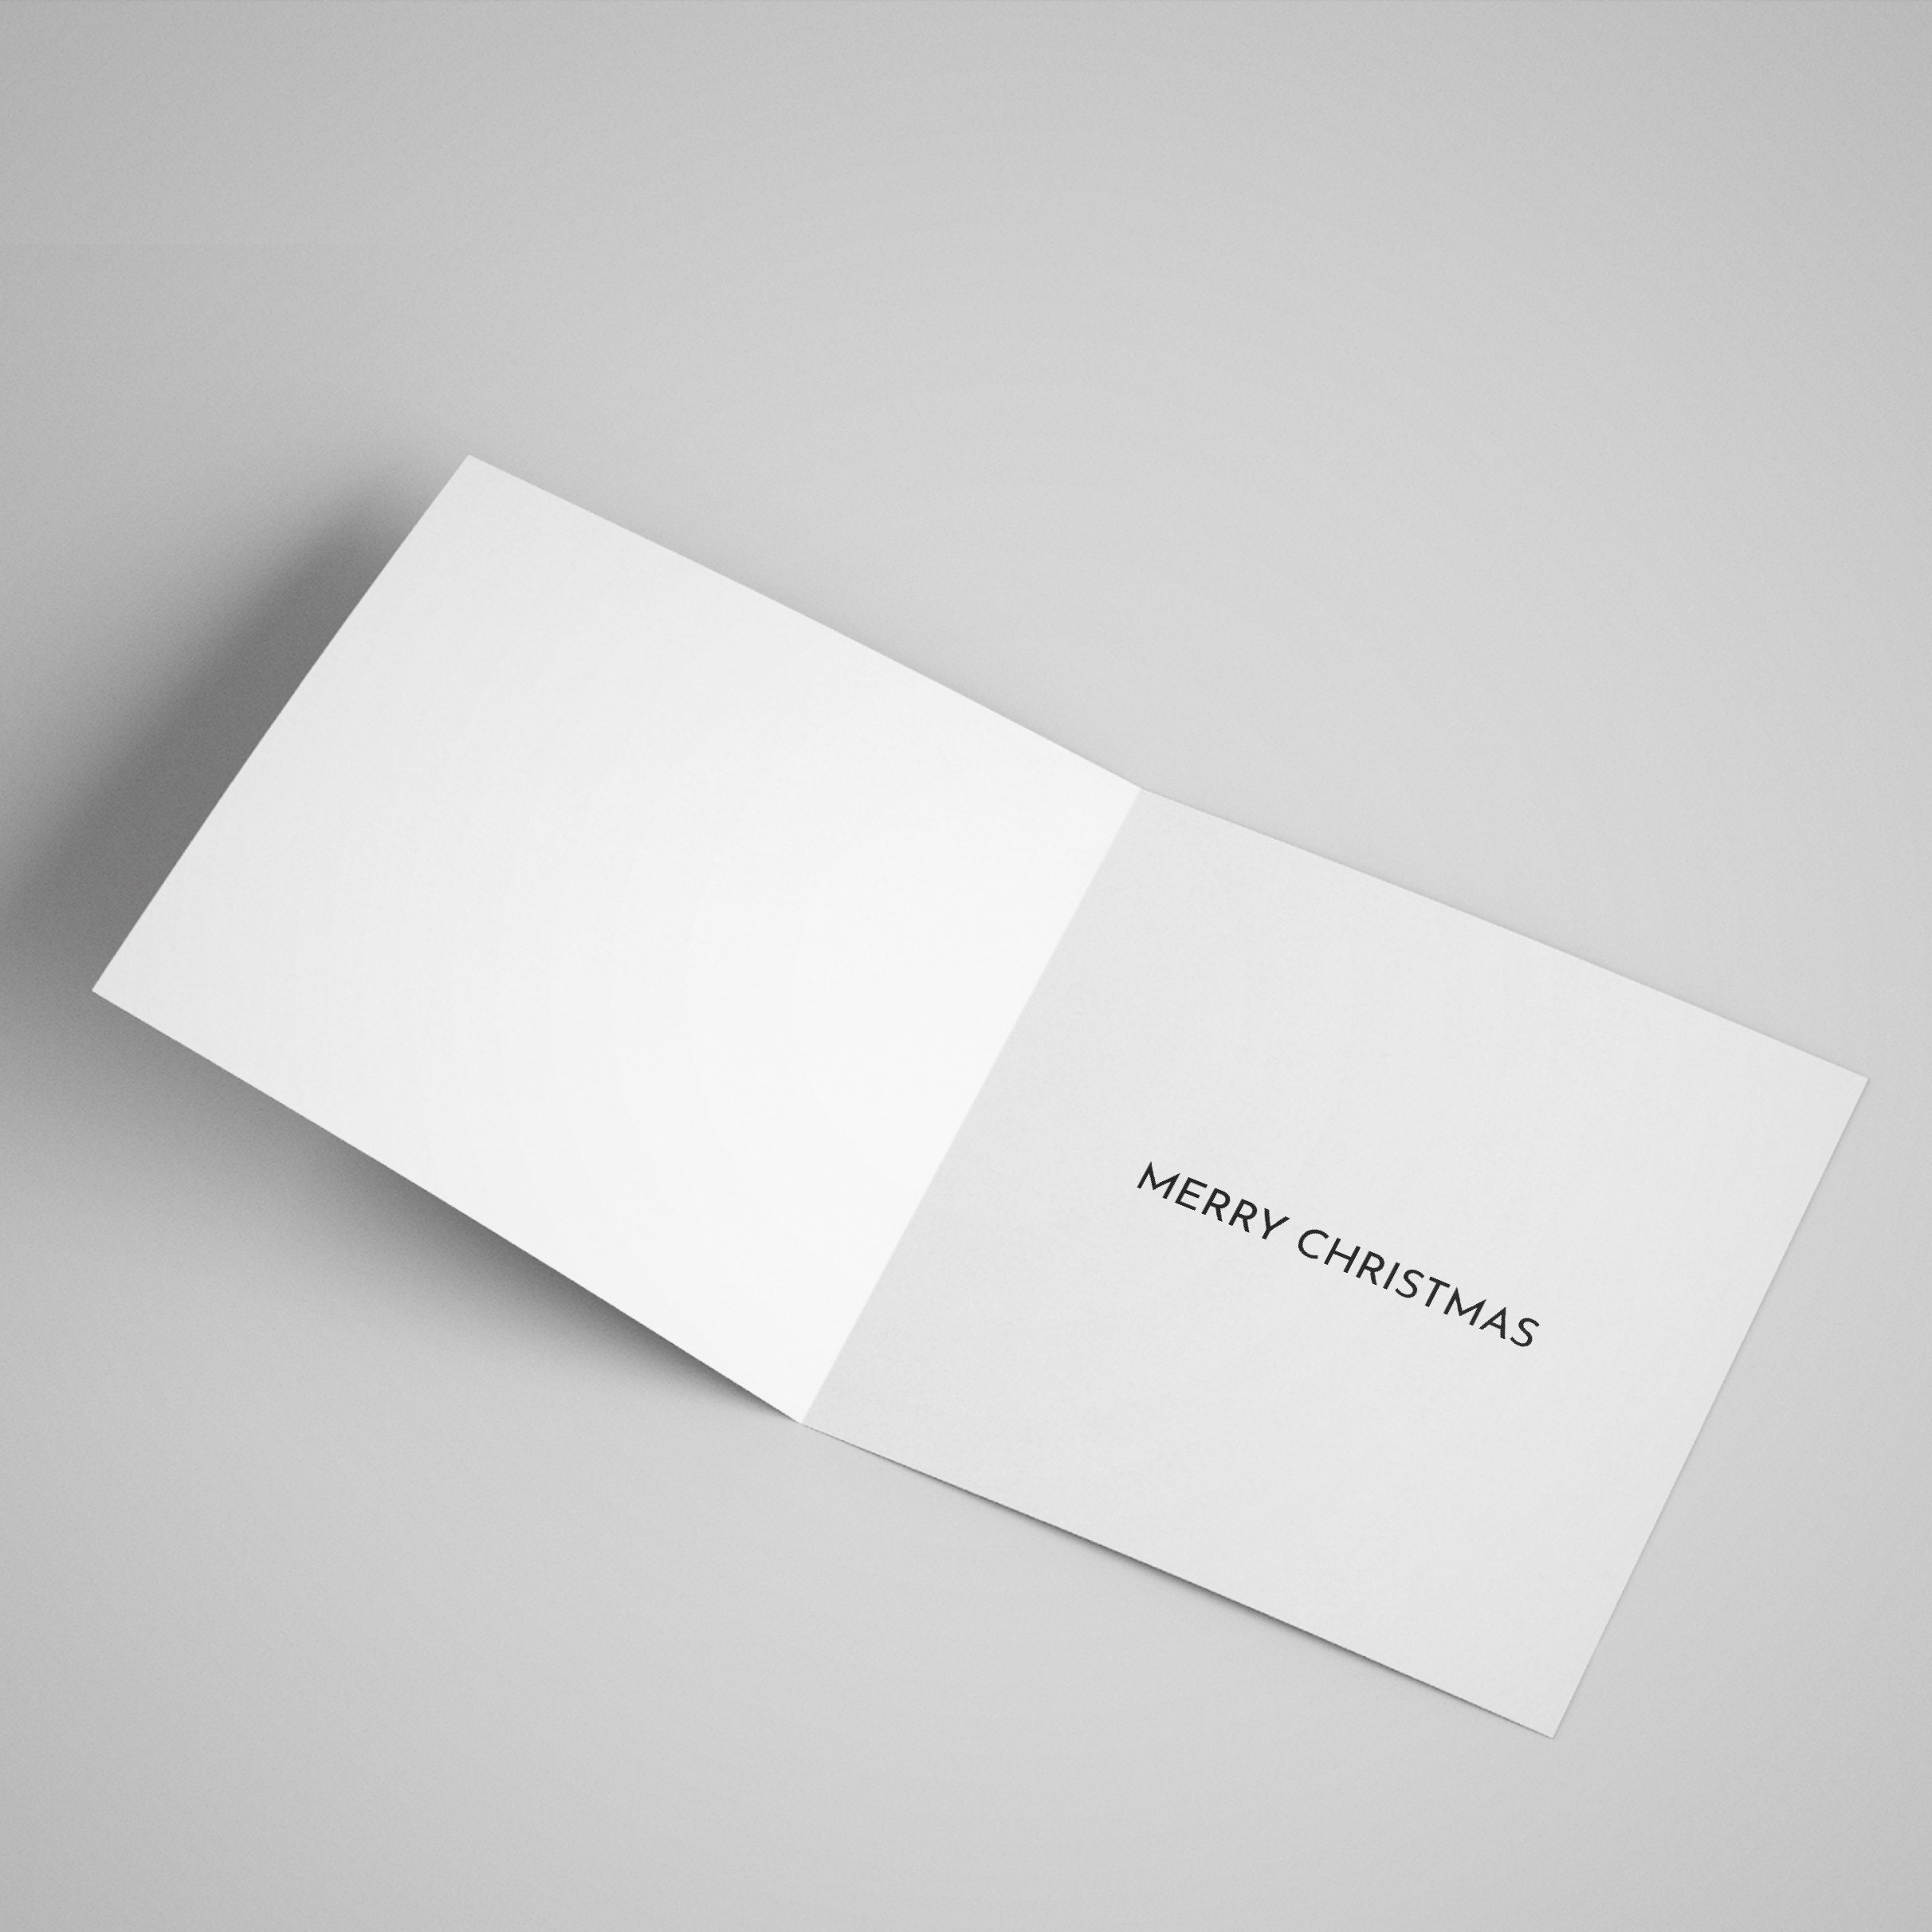 Open card showing that the inside of the card has a 'Merry Christmas' message